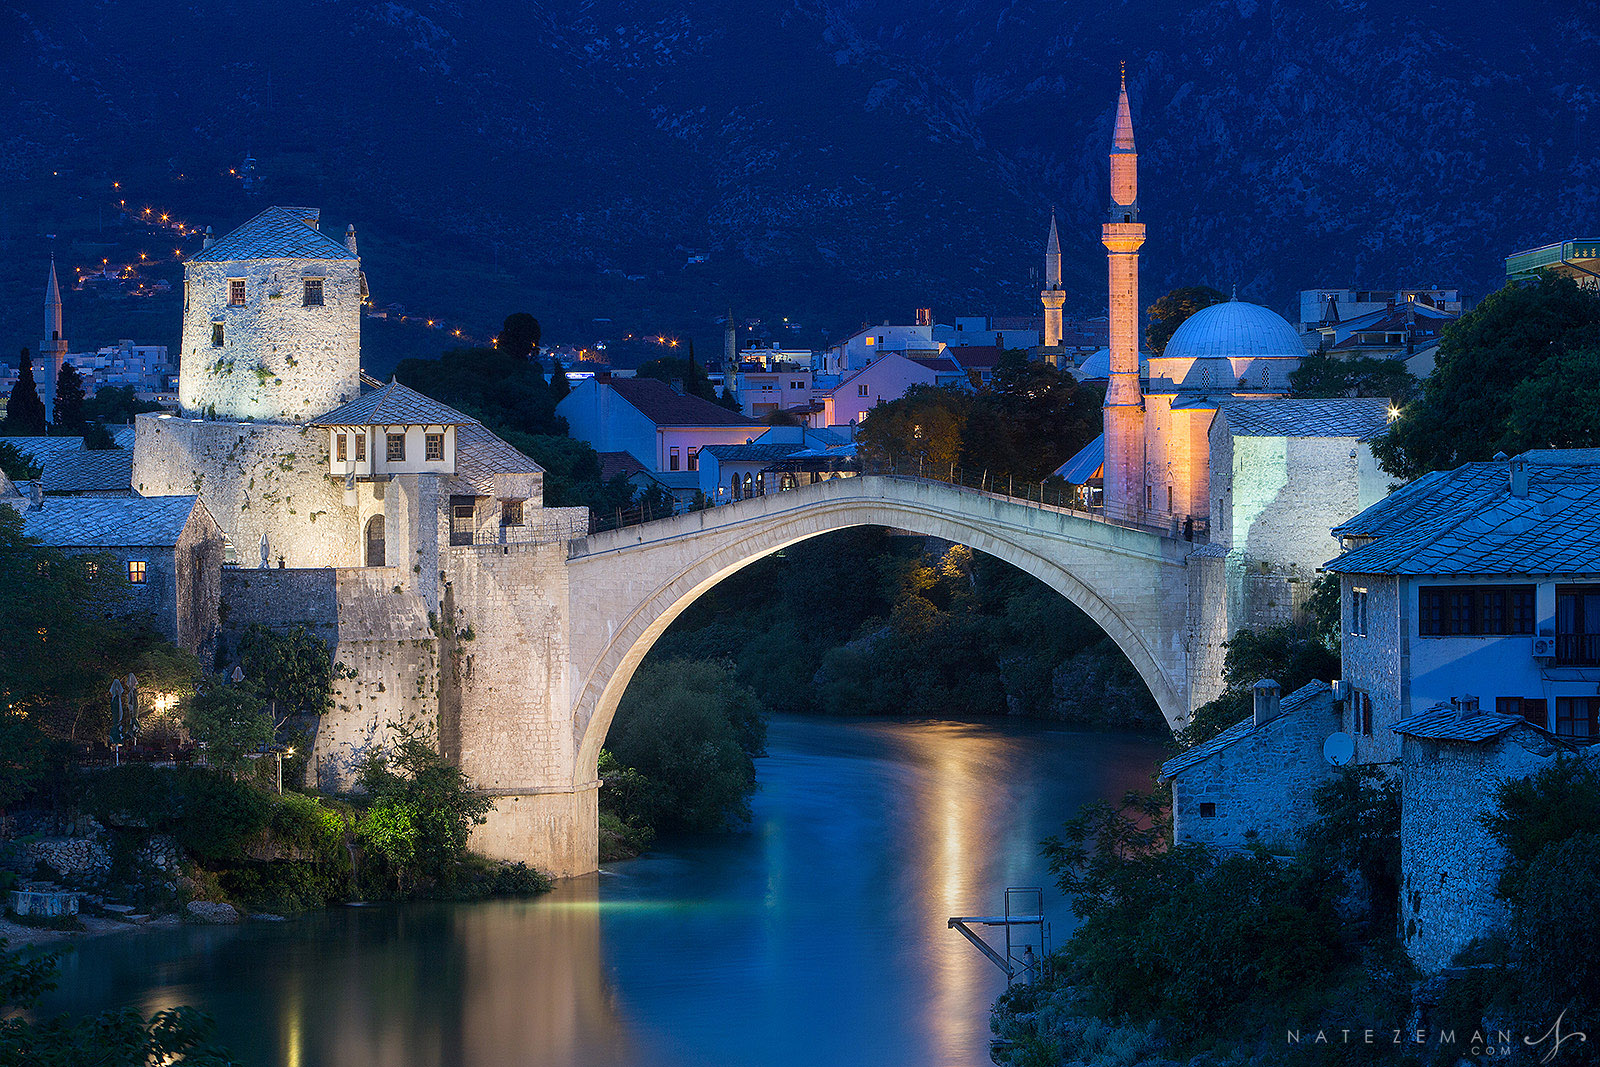 Bluehour arrives in one of the most amazing cities I've ever had the chance to photograph. Urbanization of Mostar, in Bosnia...